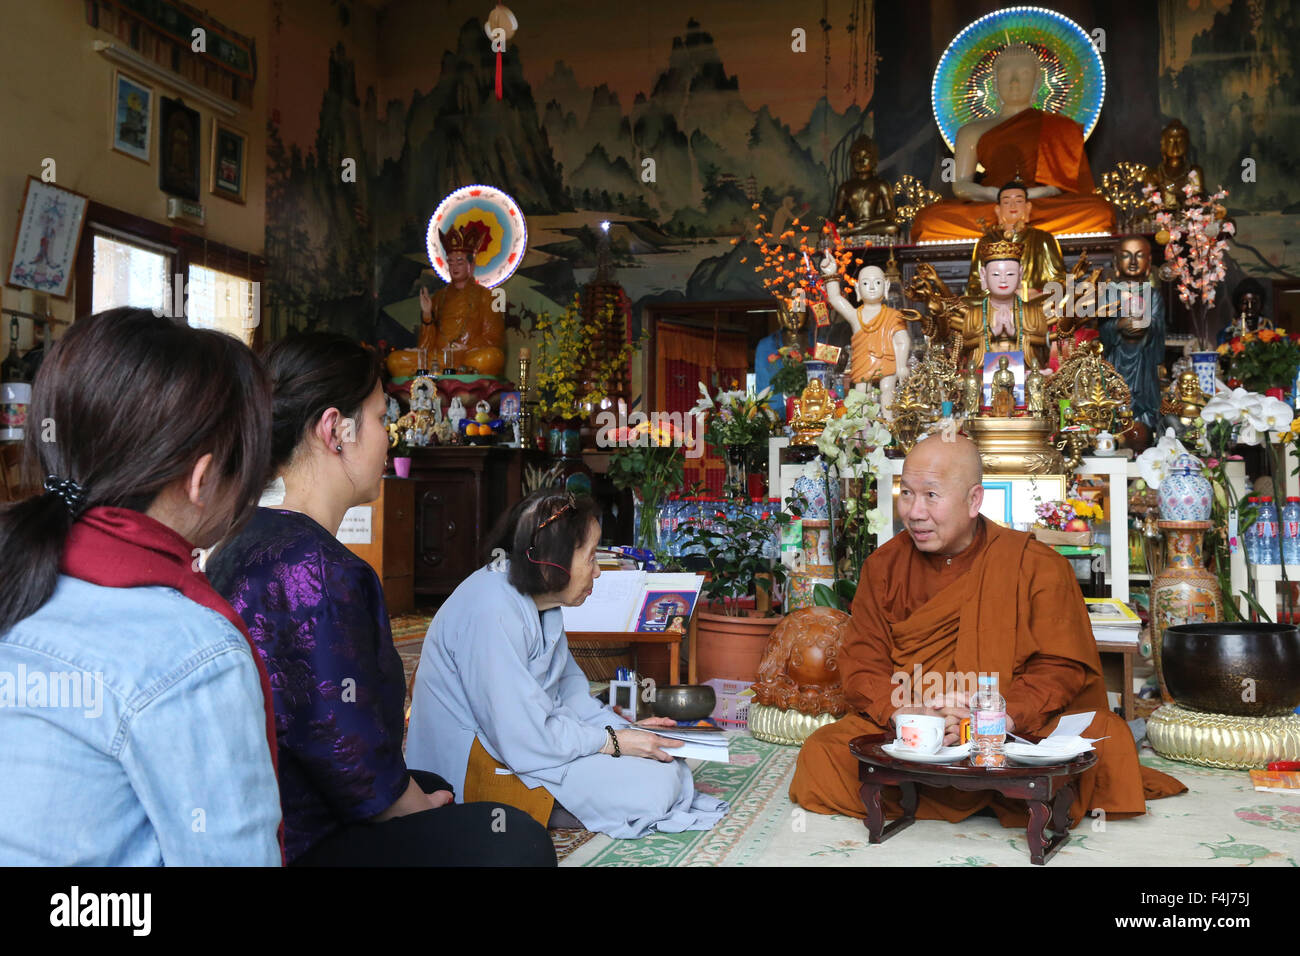 Learning Buddhism with a monk, Tu An Buddhist temple, Saint-Pierre-en-Faucigny, Haute-Savoie, France, Europe - Stock Image